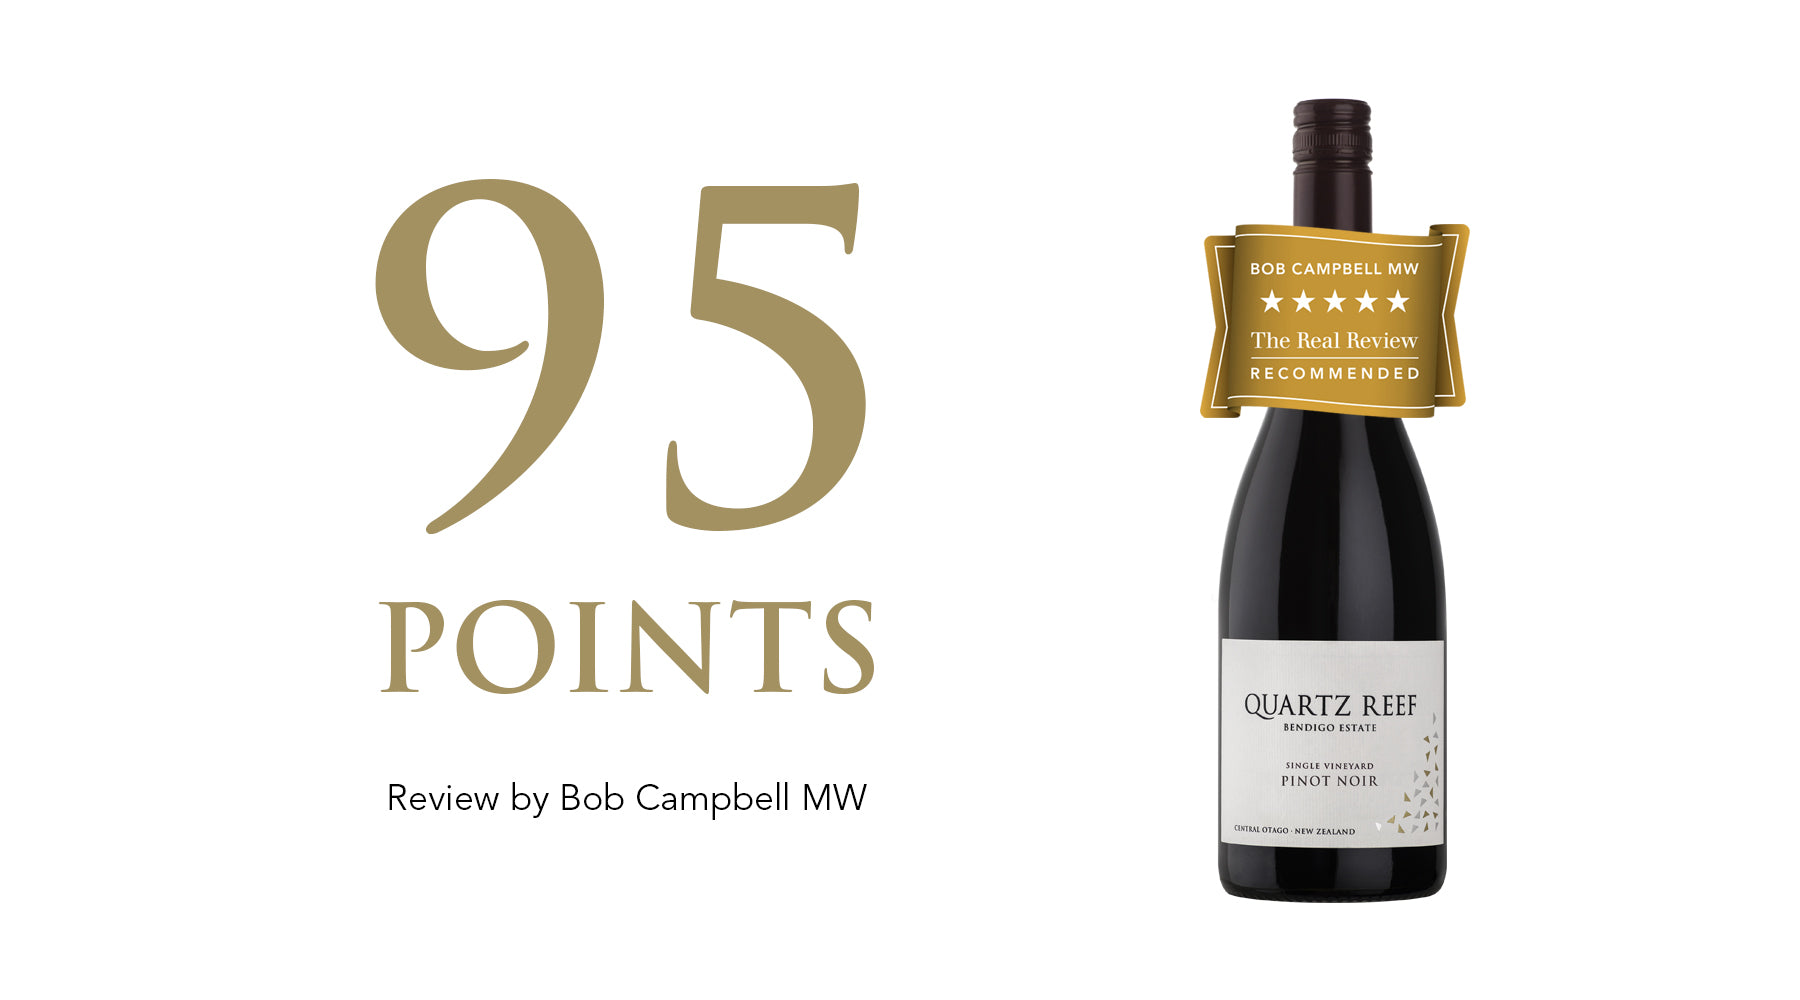 Pinot Noir 2017: Awarded 95 Points and 5 Stars